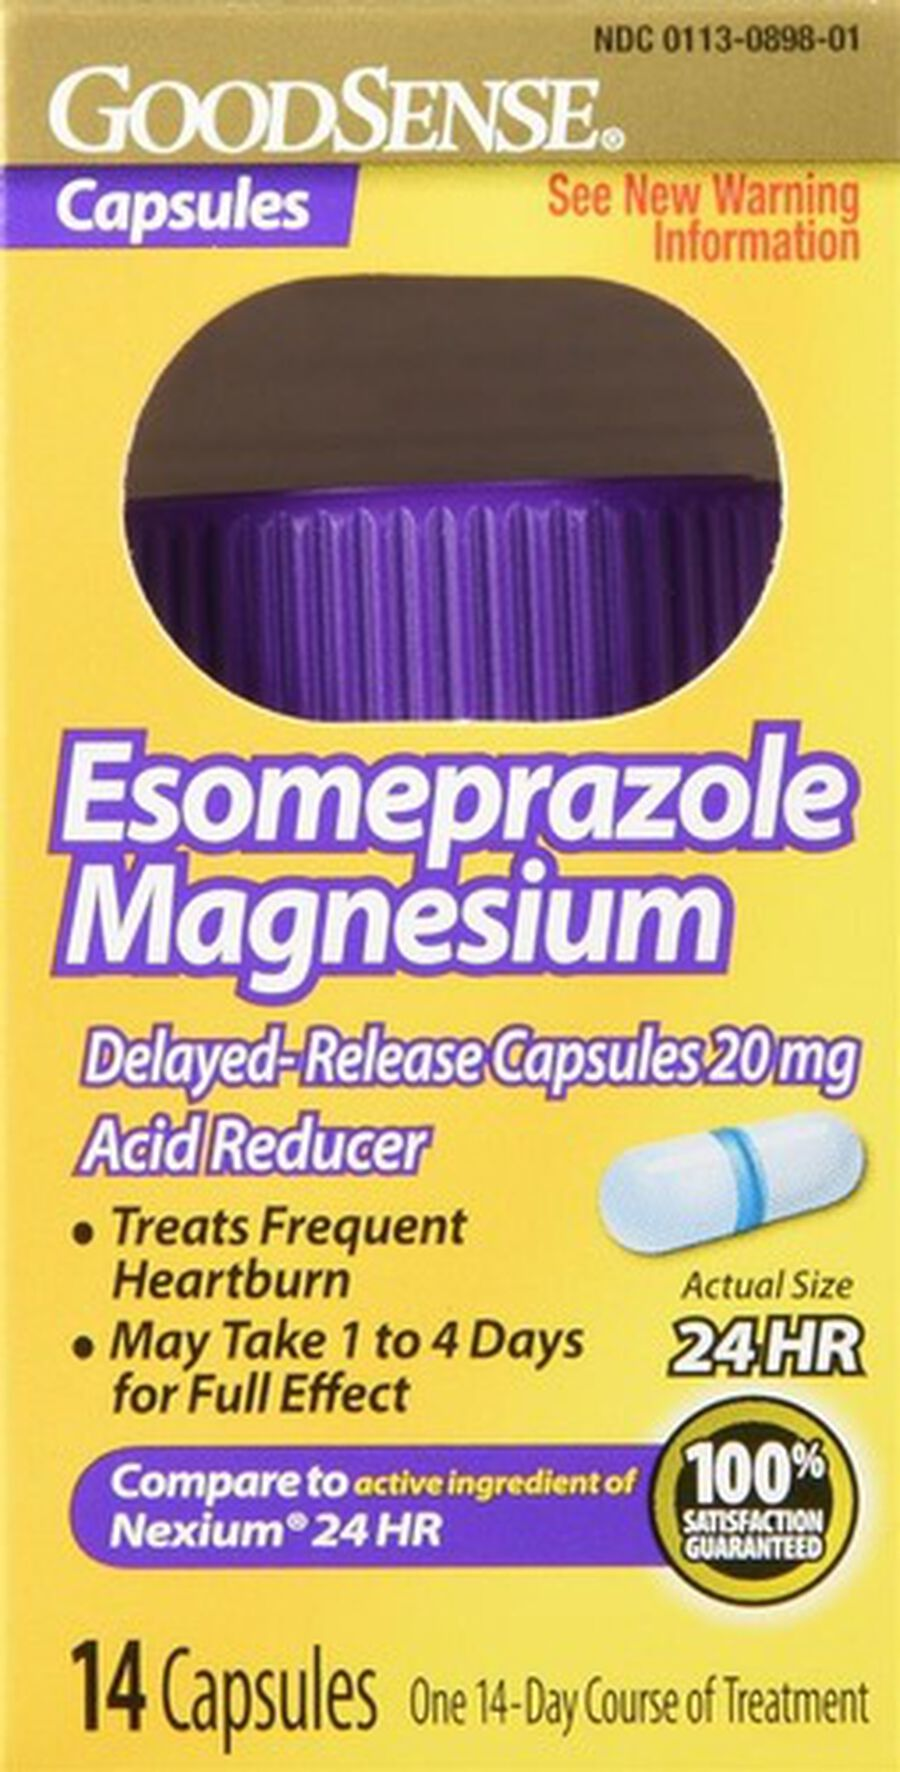 GoodSense® Esomeprazole Magnesium 20 MG, 24- Hr Delayed Release Capsules, 14 ct, , large image number 0